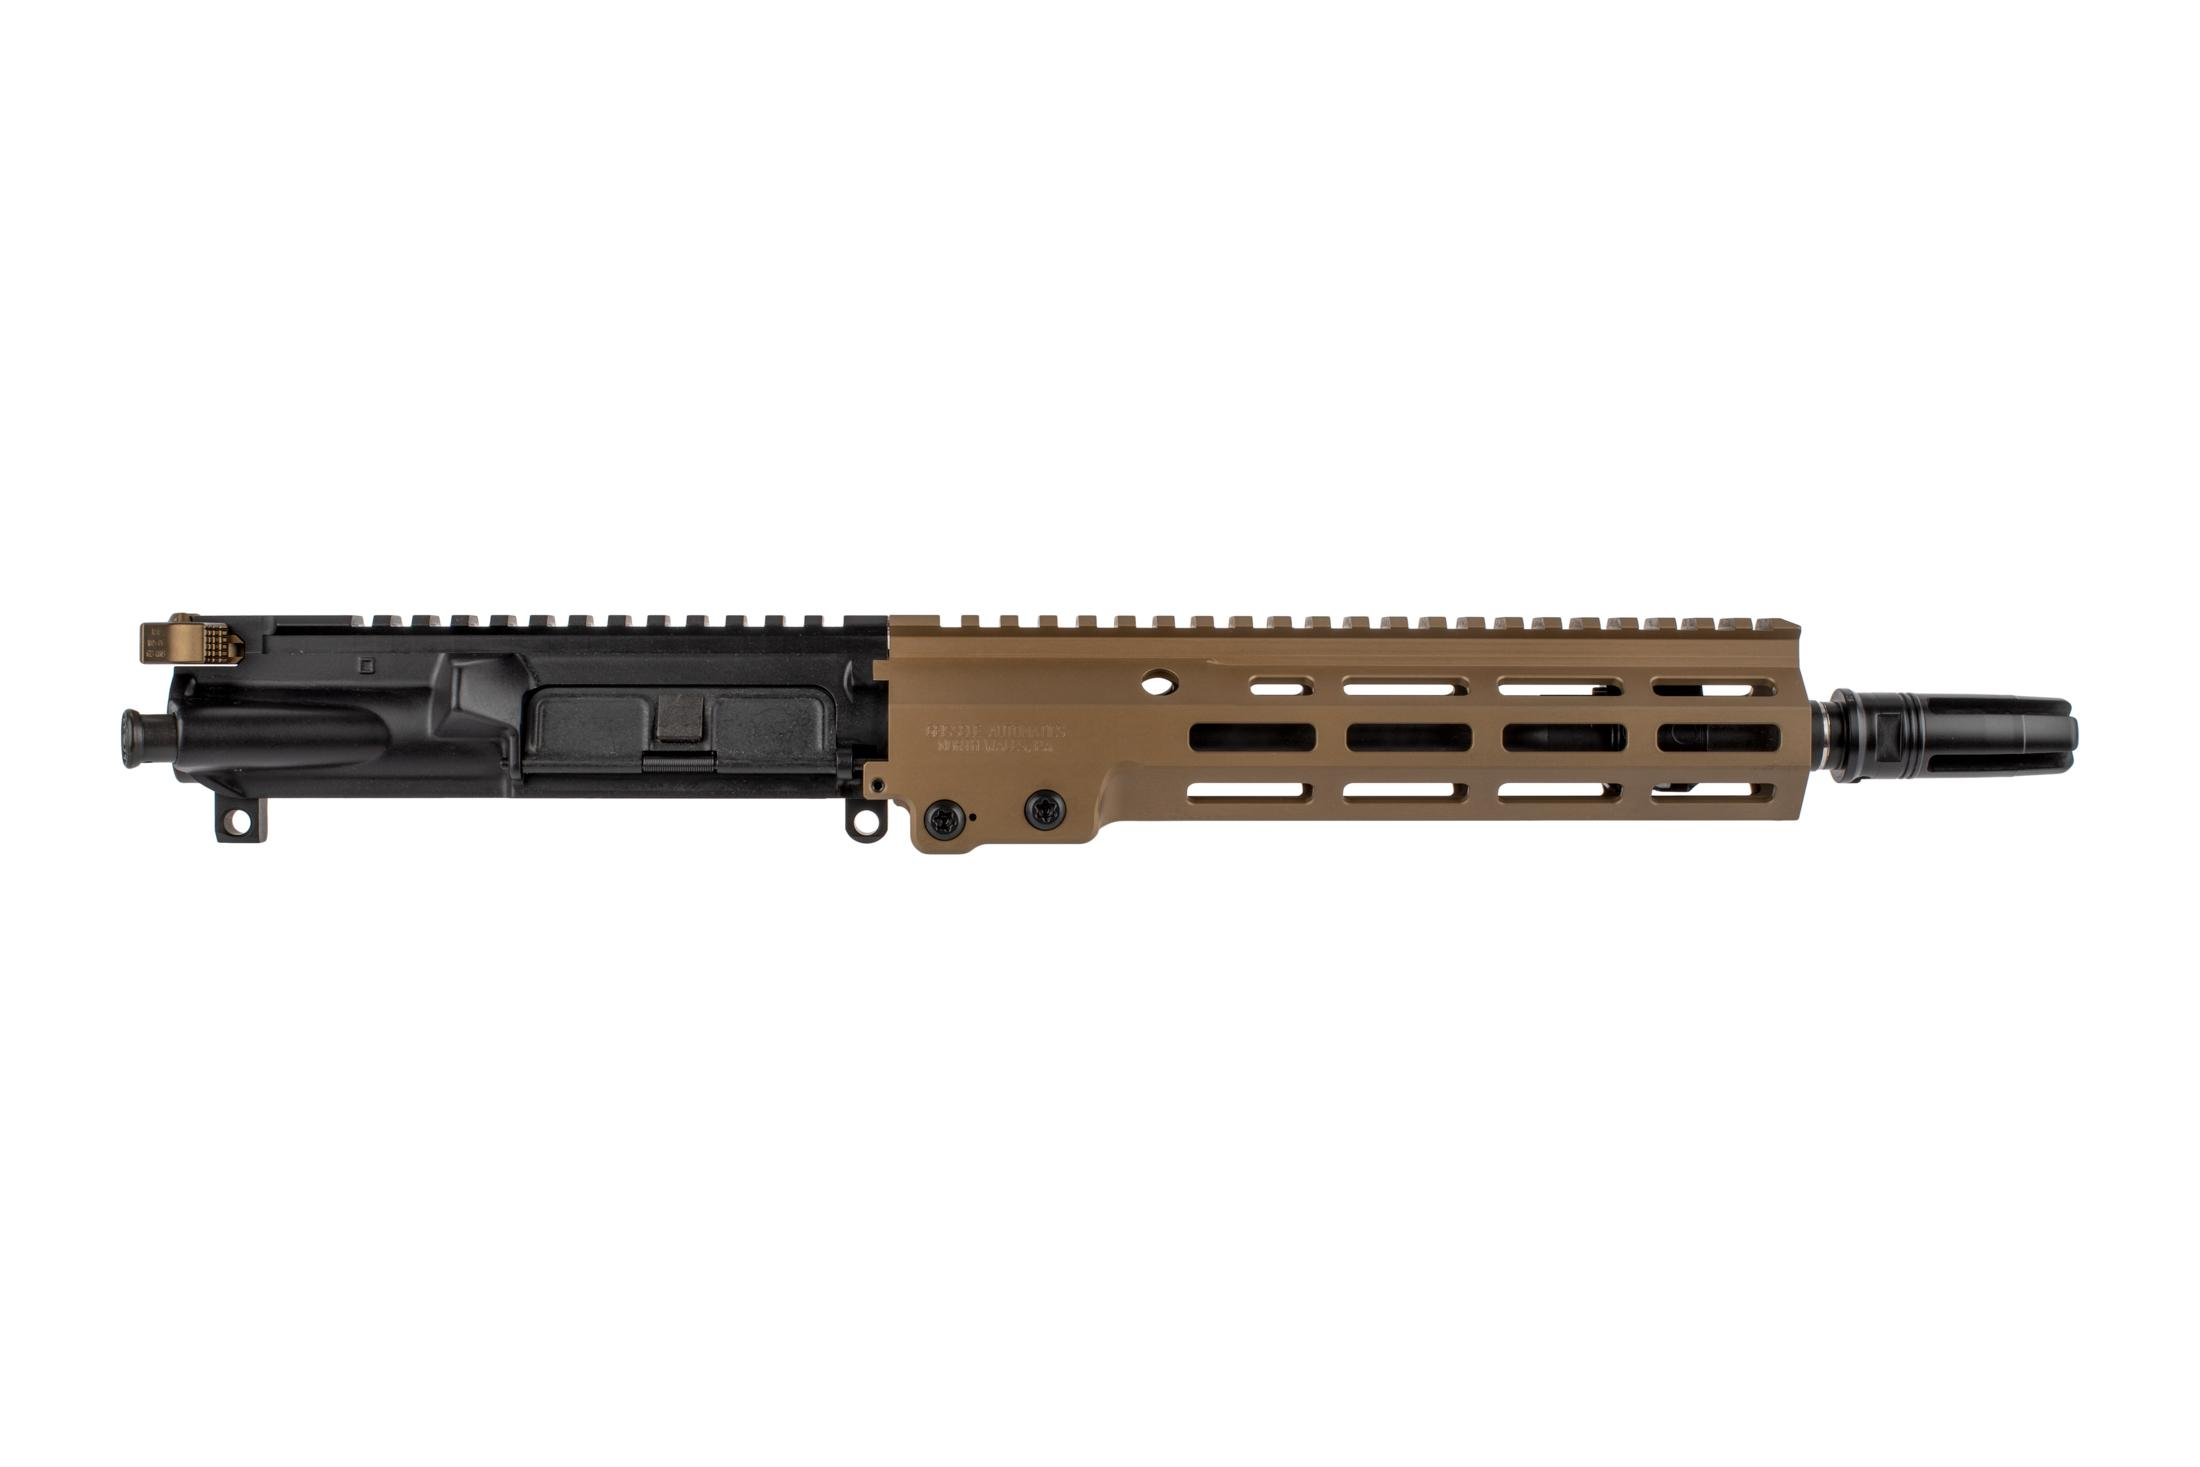 The Geissele URGI near clone complete upper receiver group features the MK16 super modular M-LOK handguard